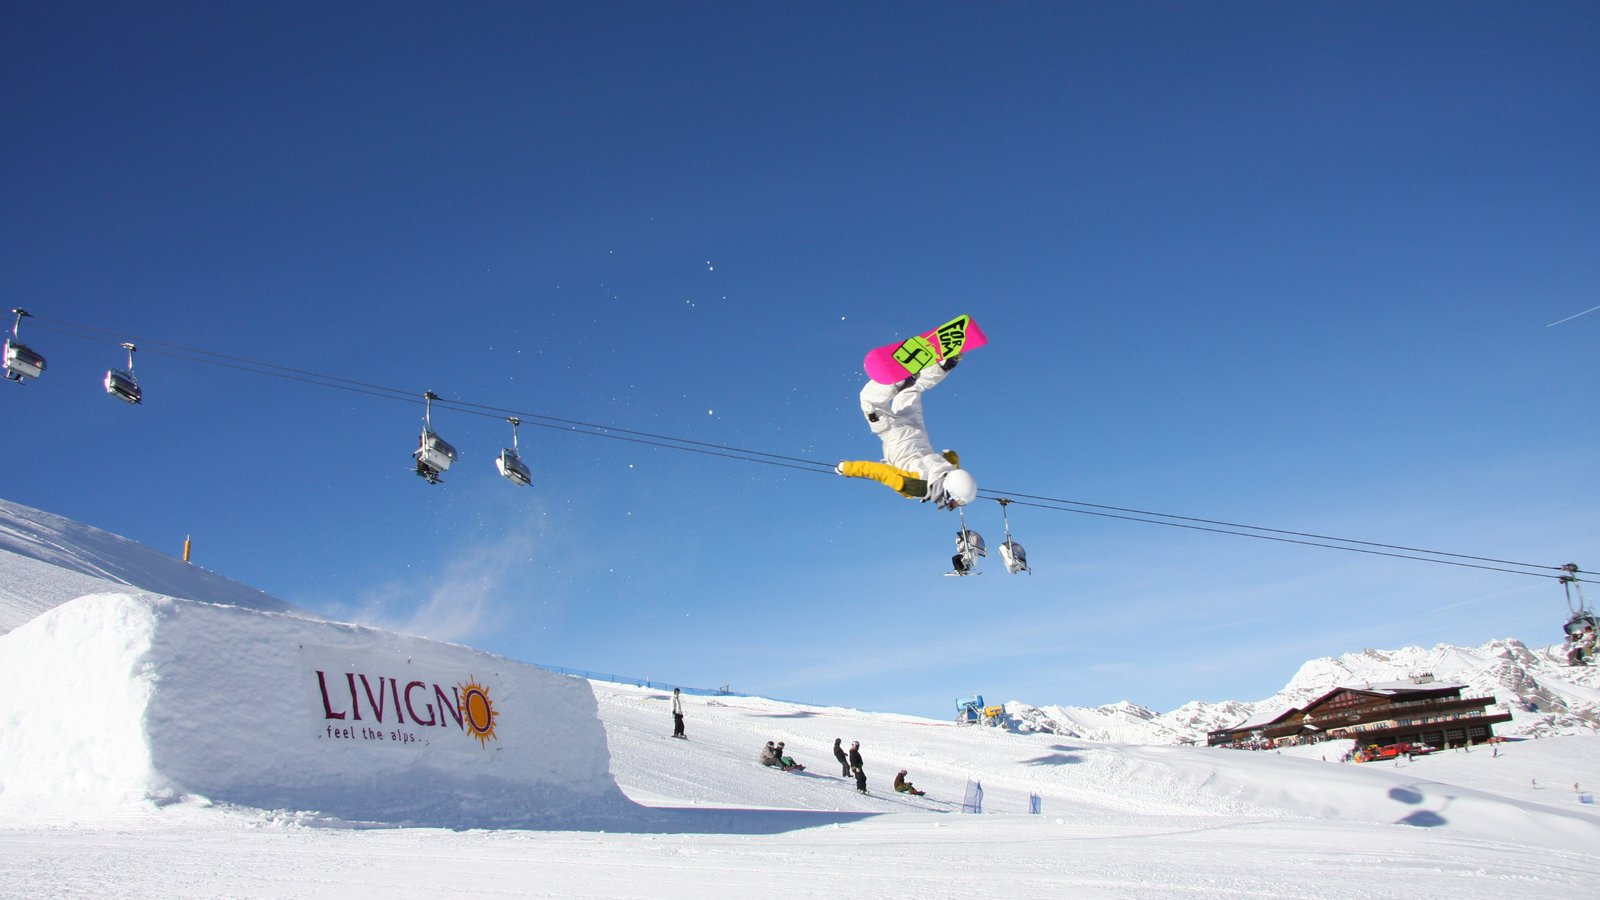 Livigno Ski Area which includes a gondola, snow and snow boarding